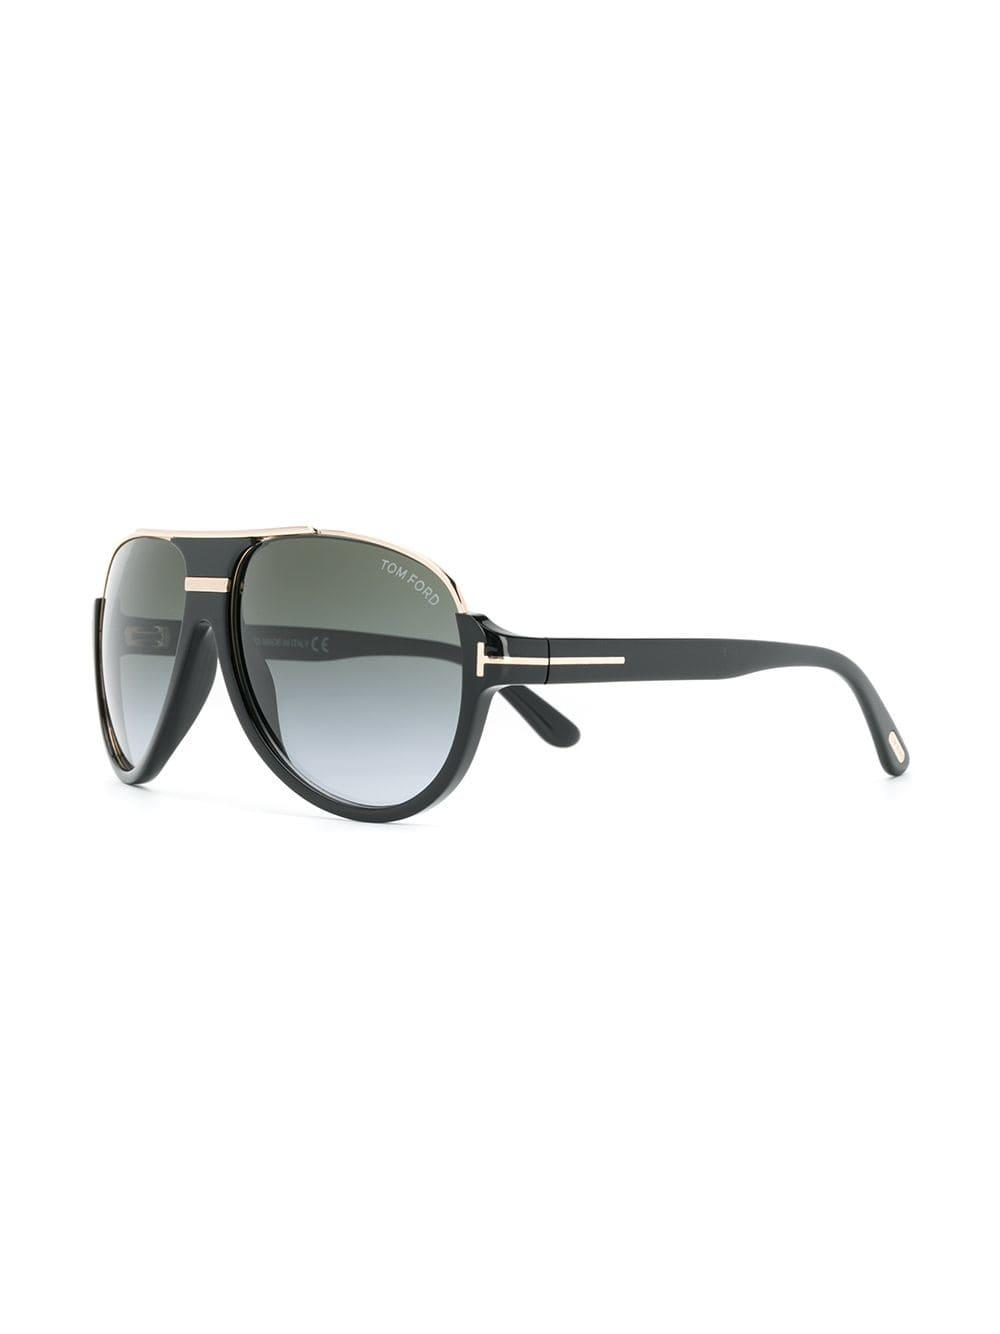 aaa7ad3283e Lyst - Tom Ford Dimitry Aviator Sunglasses in Black